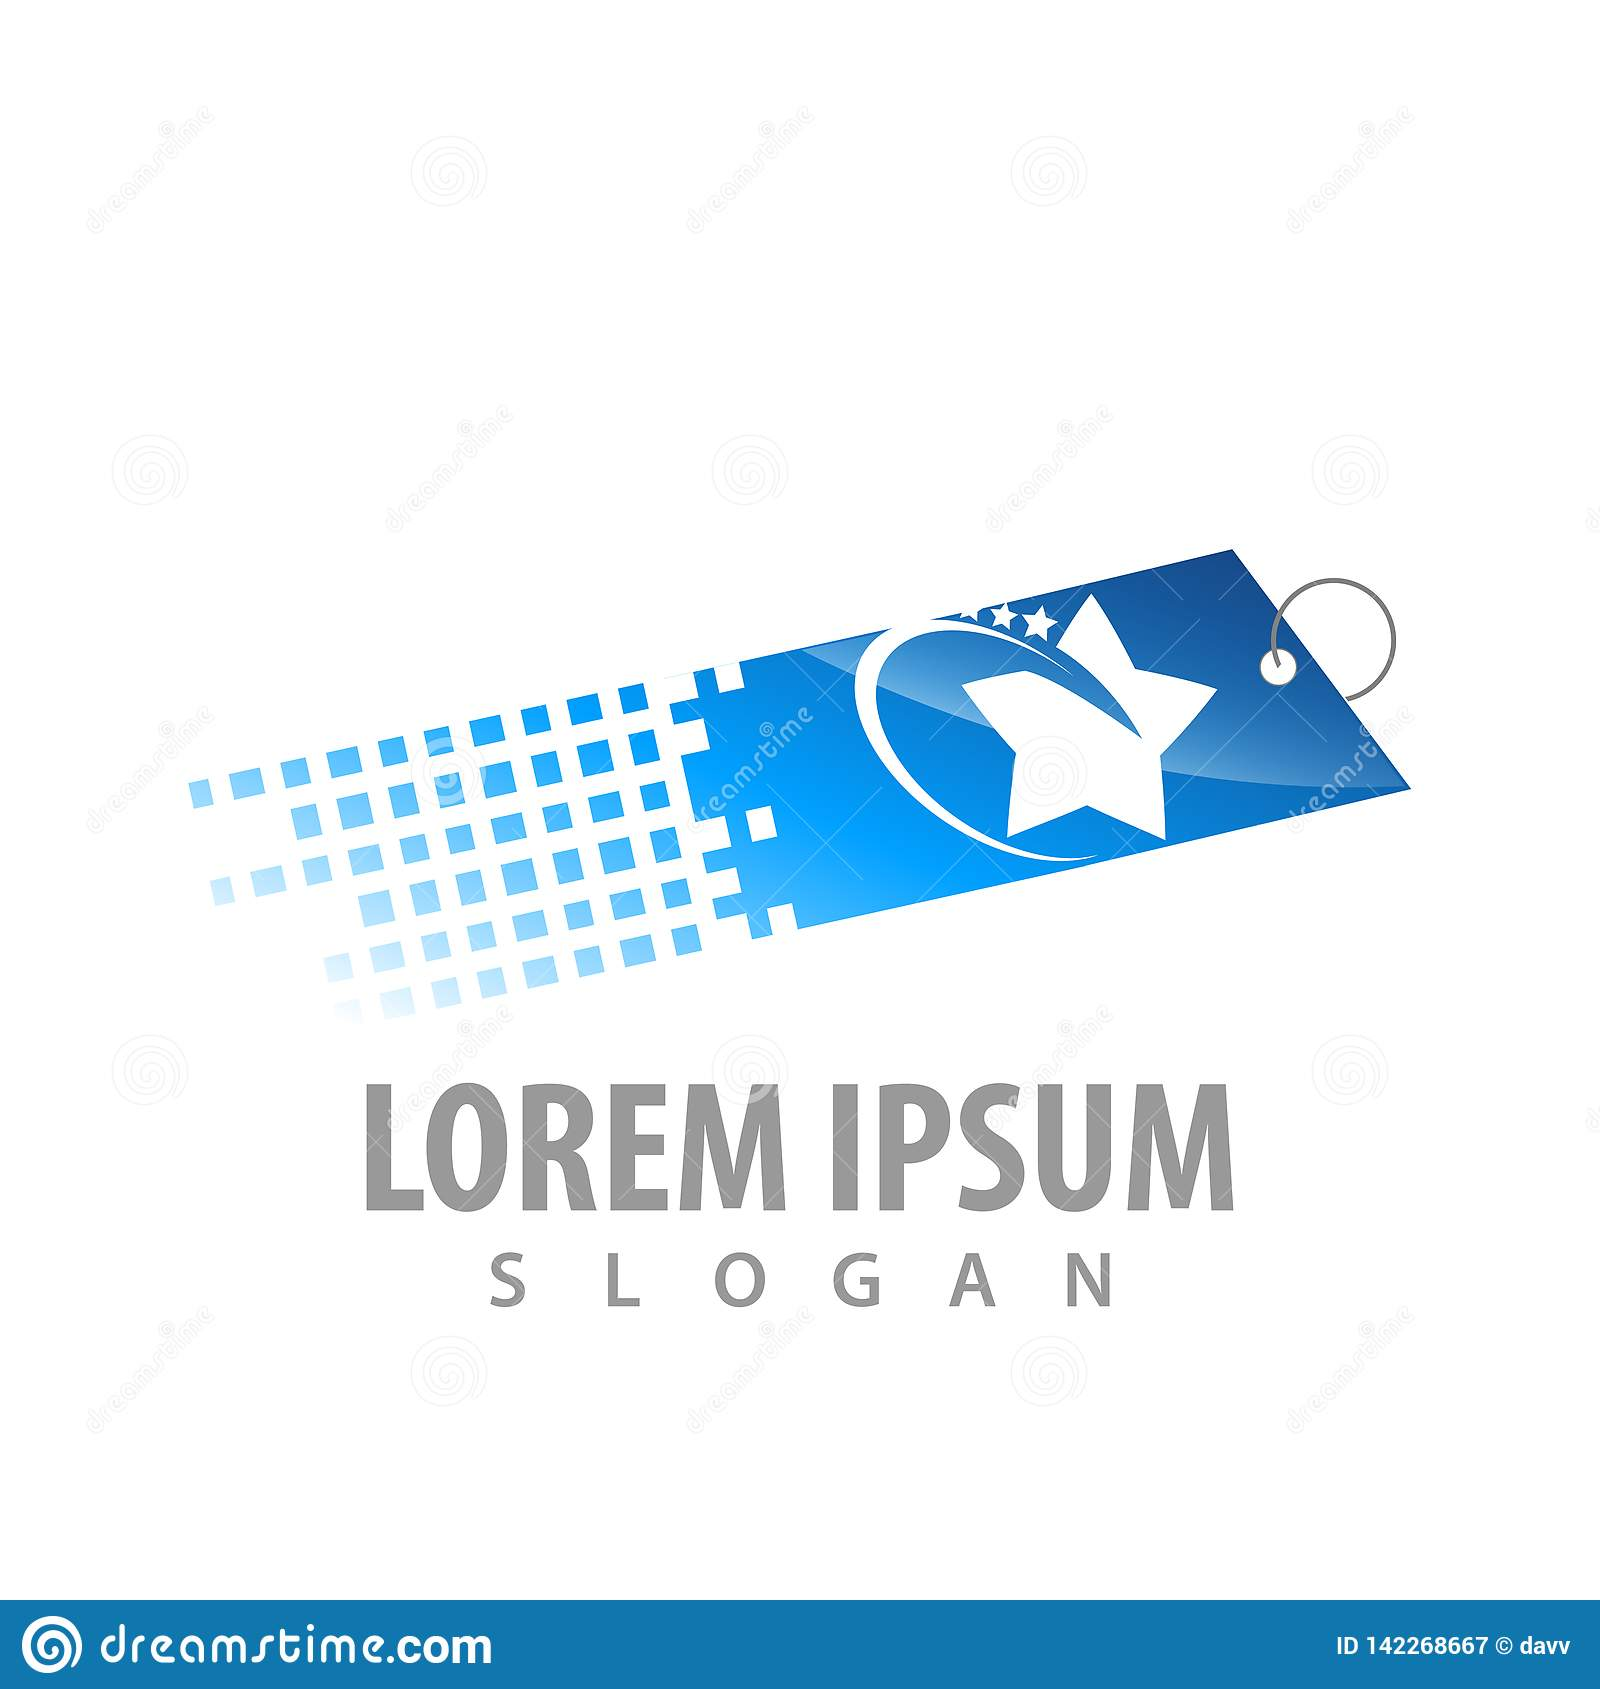 Digital price tag label with star concept design. Symbol graphic template element vector